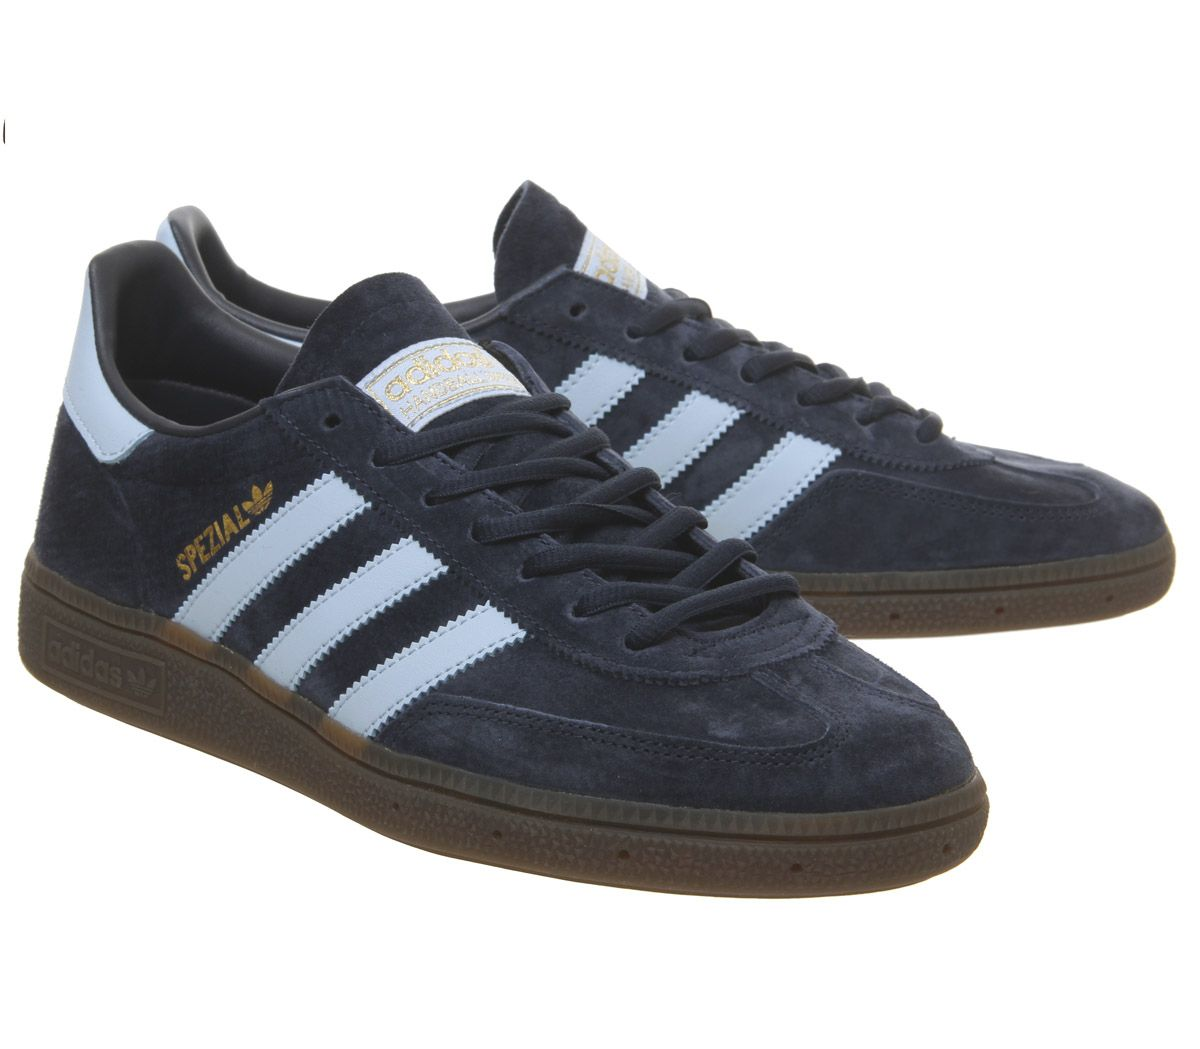 f79bf921c30f Sentinel Adidas Handball Spezial Trainers Collegiate Navy Clear Sky Gum  Trainers Shoes